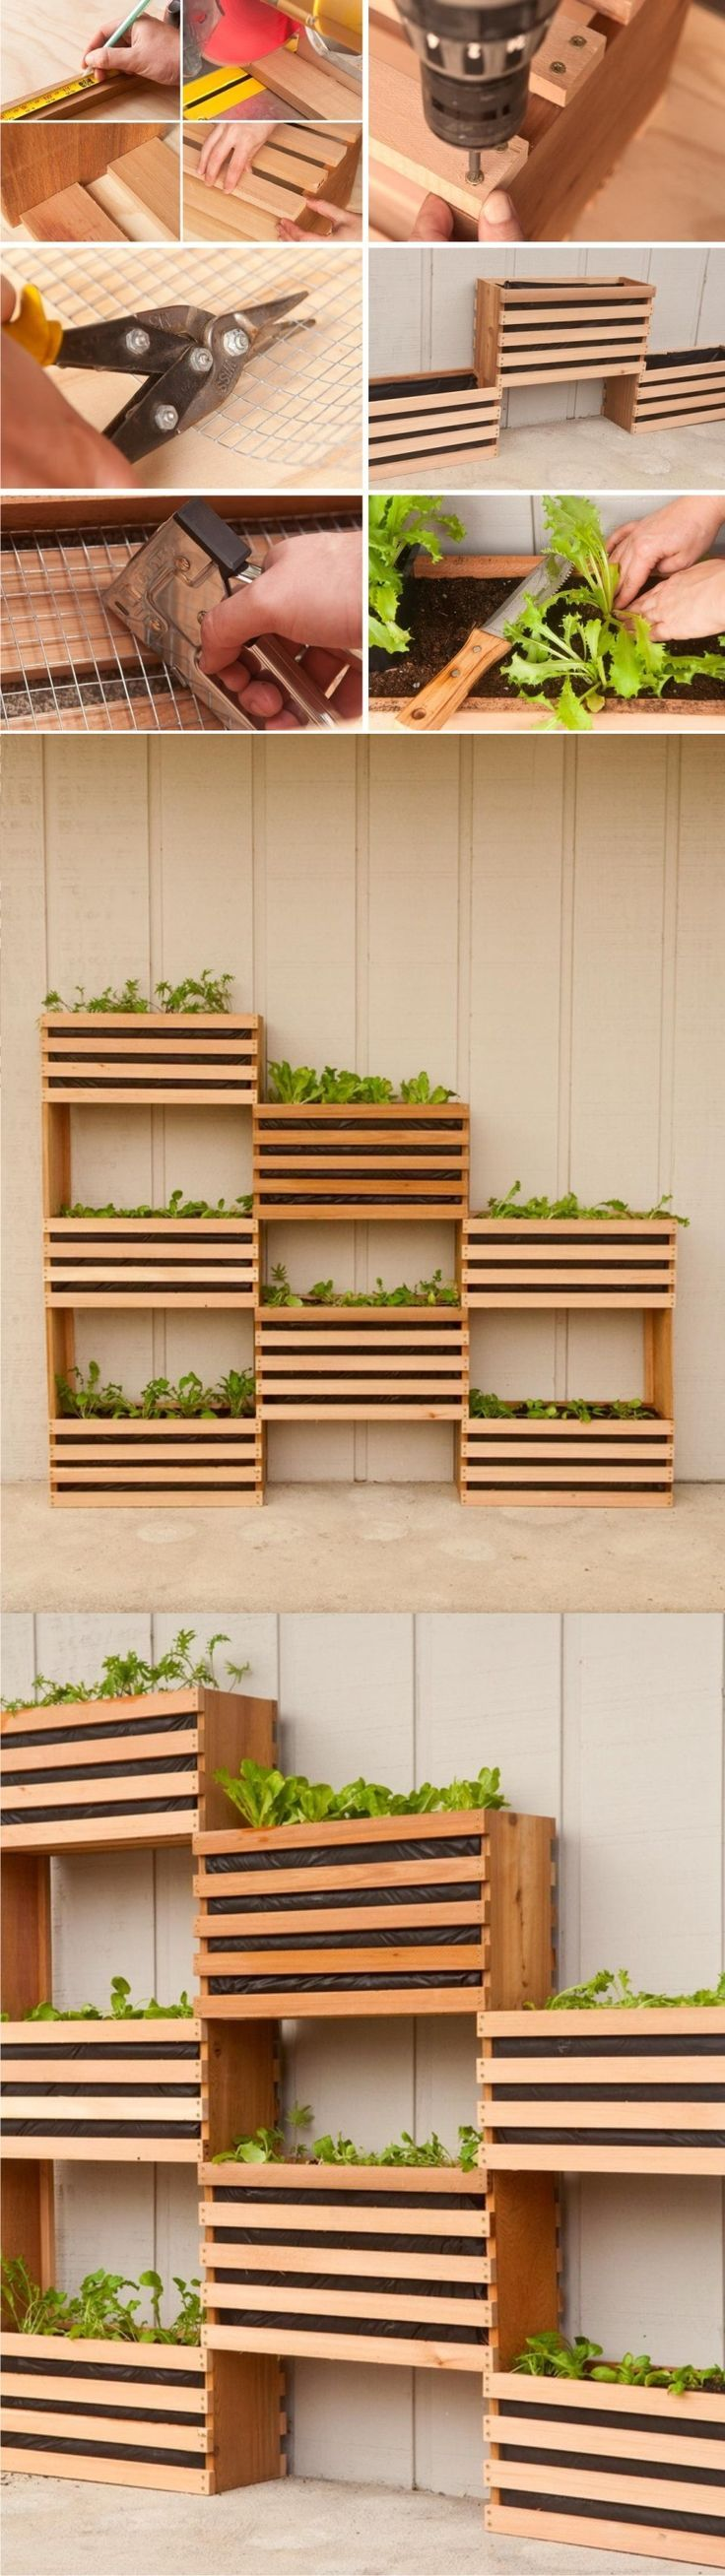 How to Make a Modern Space Saving Vertical Ve able Garden